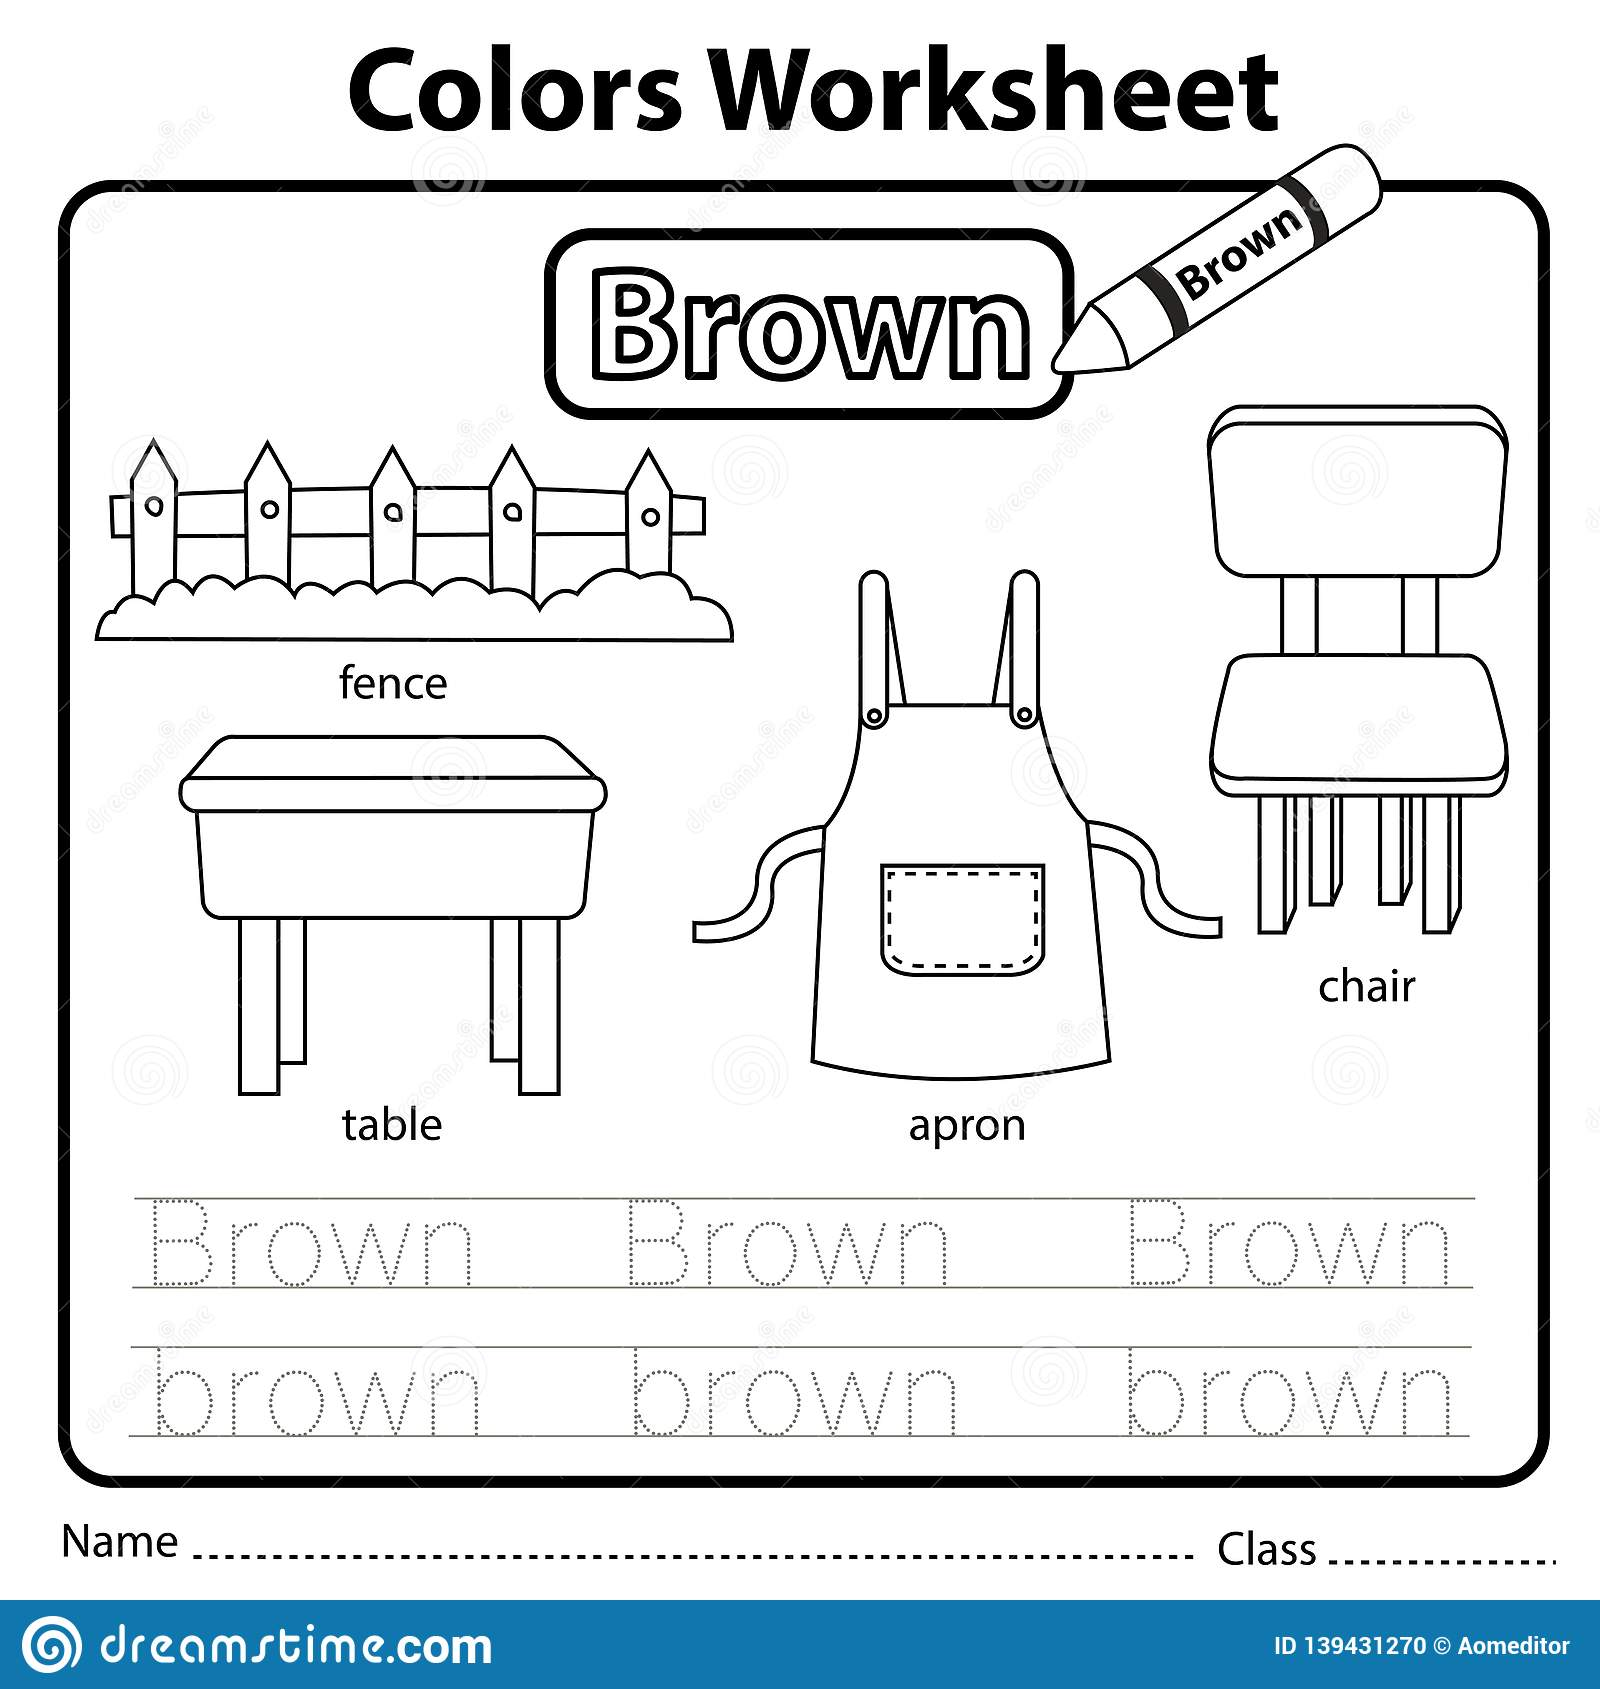 Illustrator Of Color Worksheet Brown Stock Vector